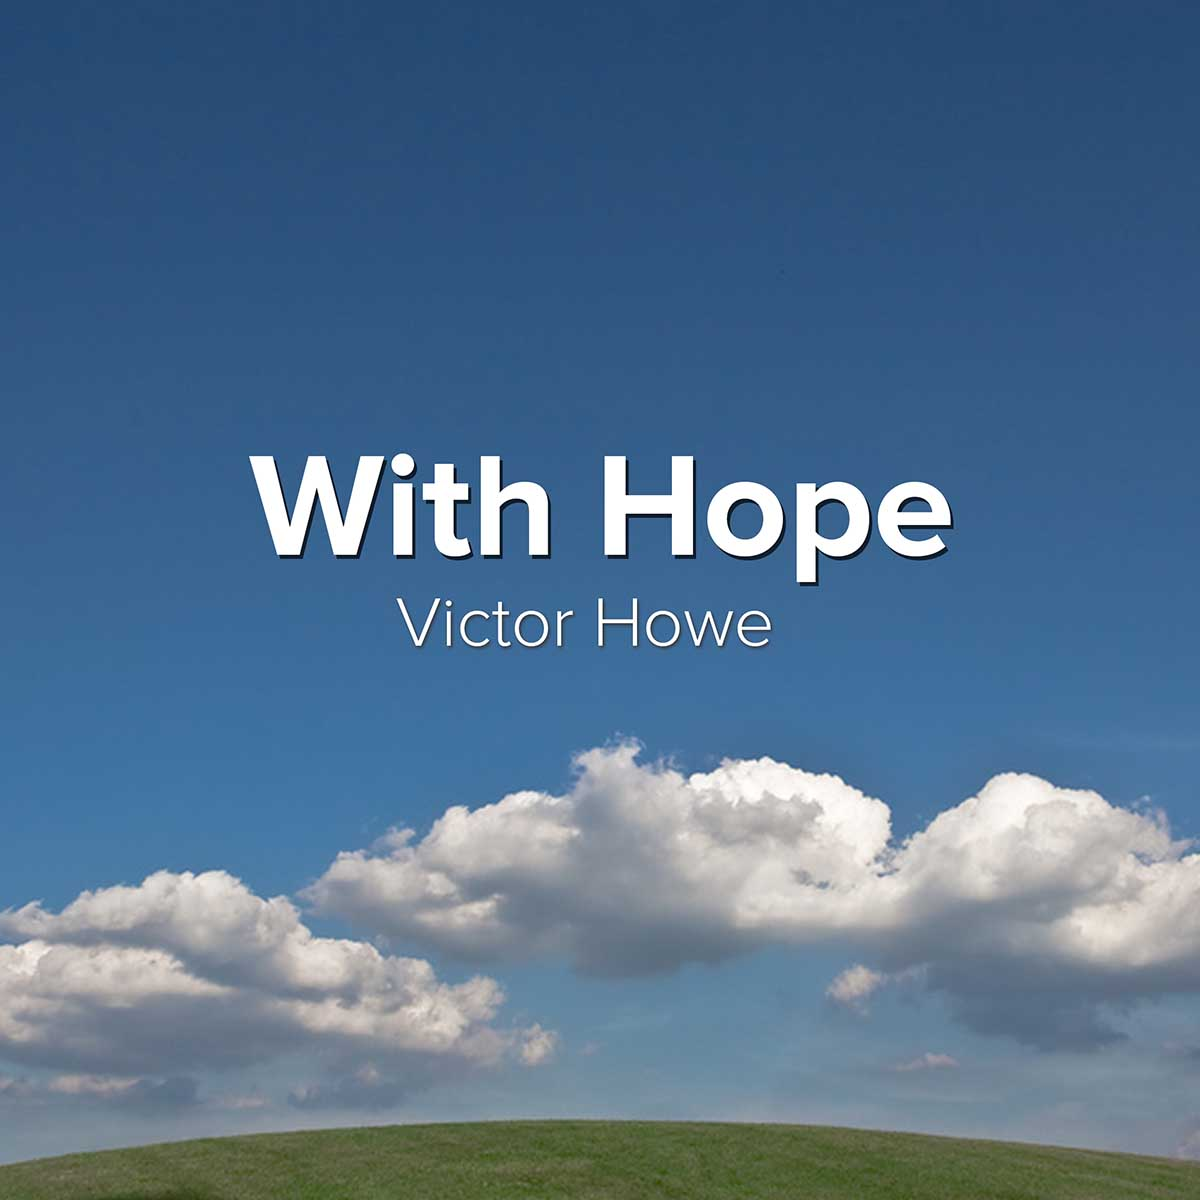 With Hope by Victor Howe Solo Classical Guitar Instrumental